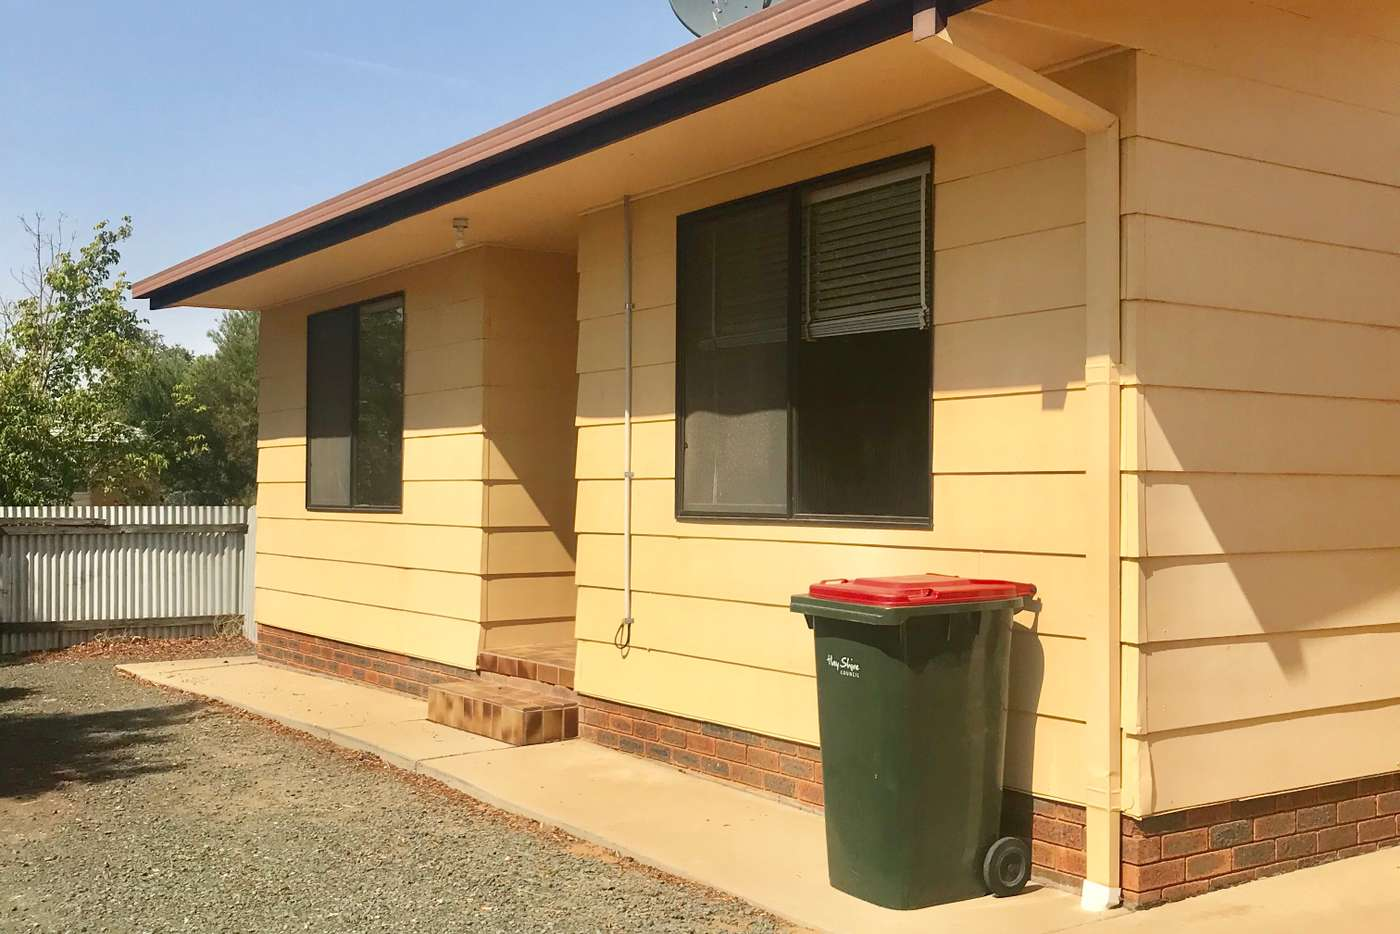 Main view of Homely flat listing, 3/306 MURRAY STREET, Hay NSW 2711